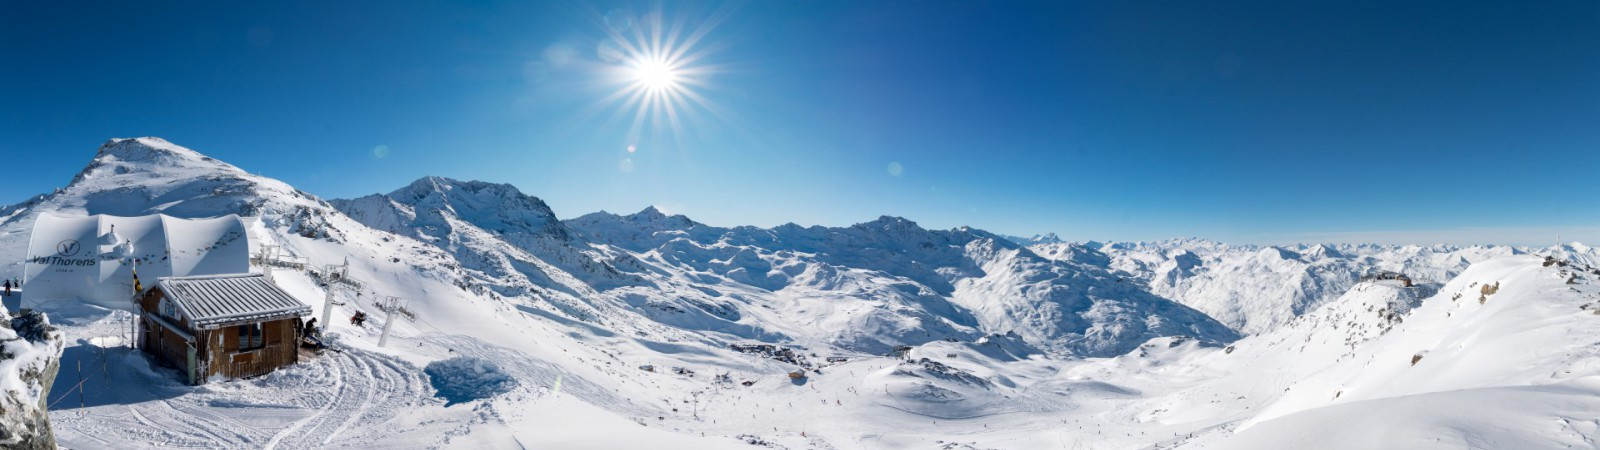 Val-Thorens Landschap